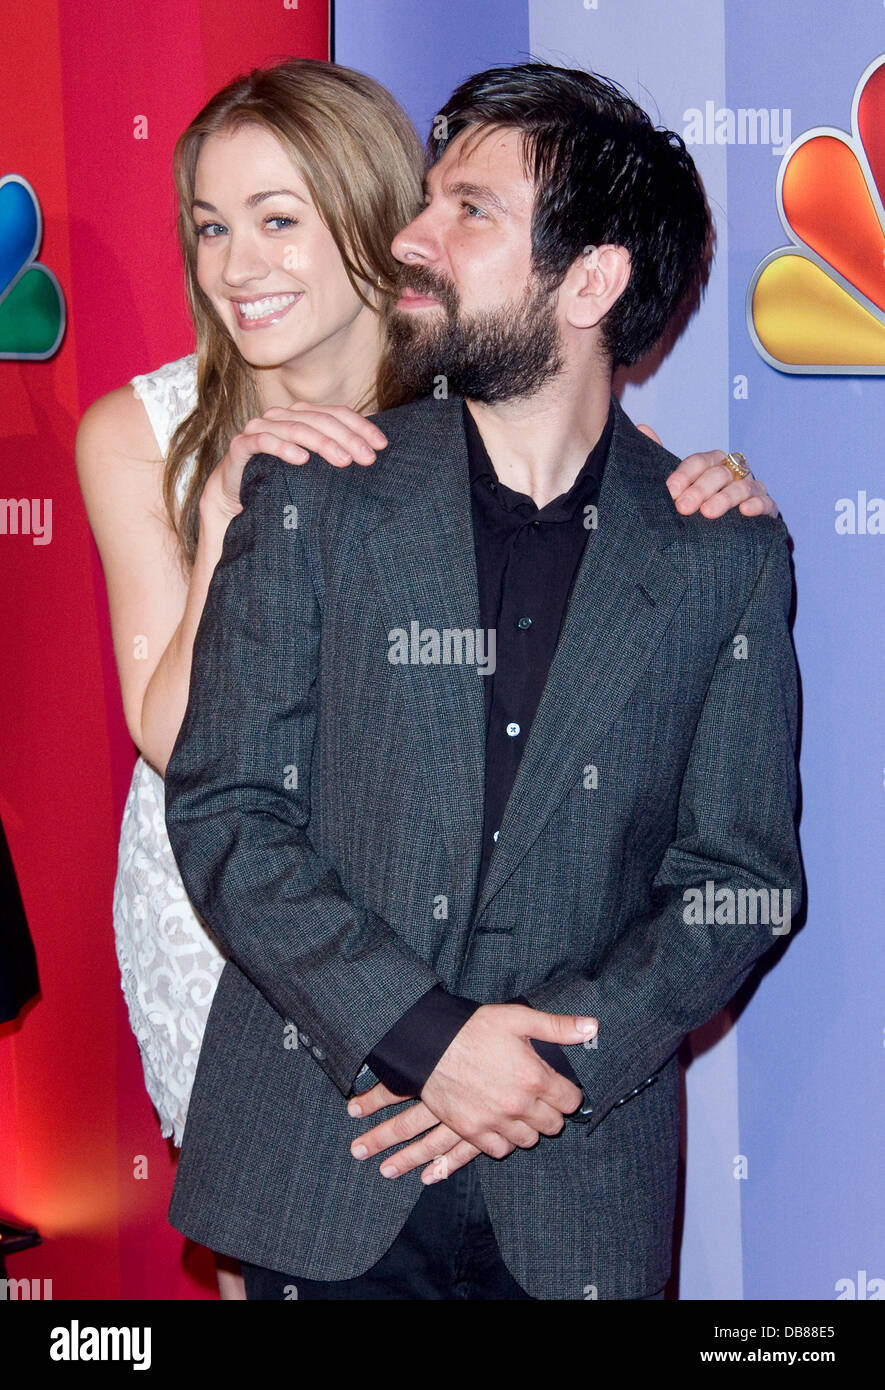 Joshua Gomez High Resolution Stock Photography And Images Alamy He married amy pham in 2011 and he is the younger brother of actor rick gomez. https www alamy com stock photo yvonne strahovski and joshua gomez fox upfront presentation arrivals 58574605 html